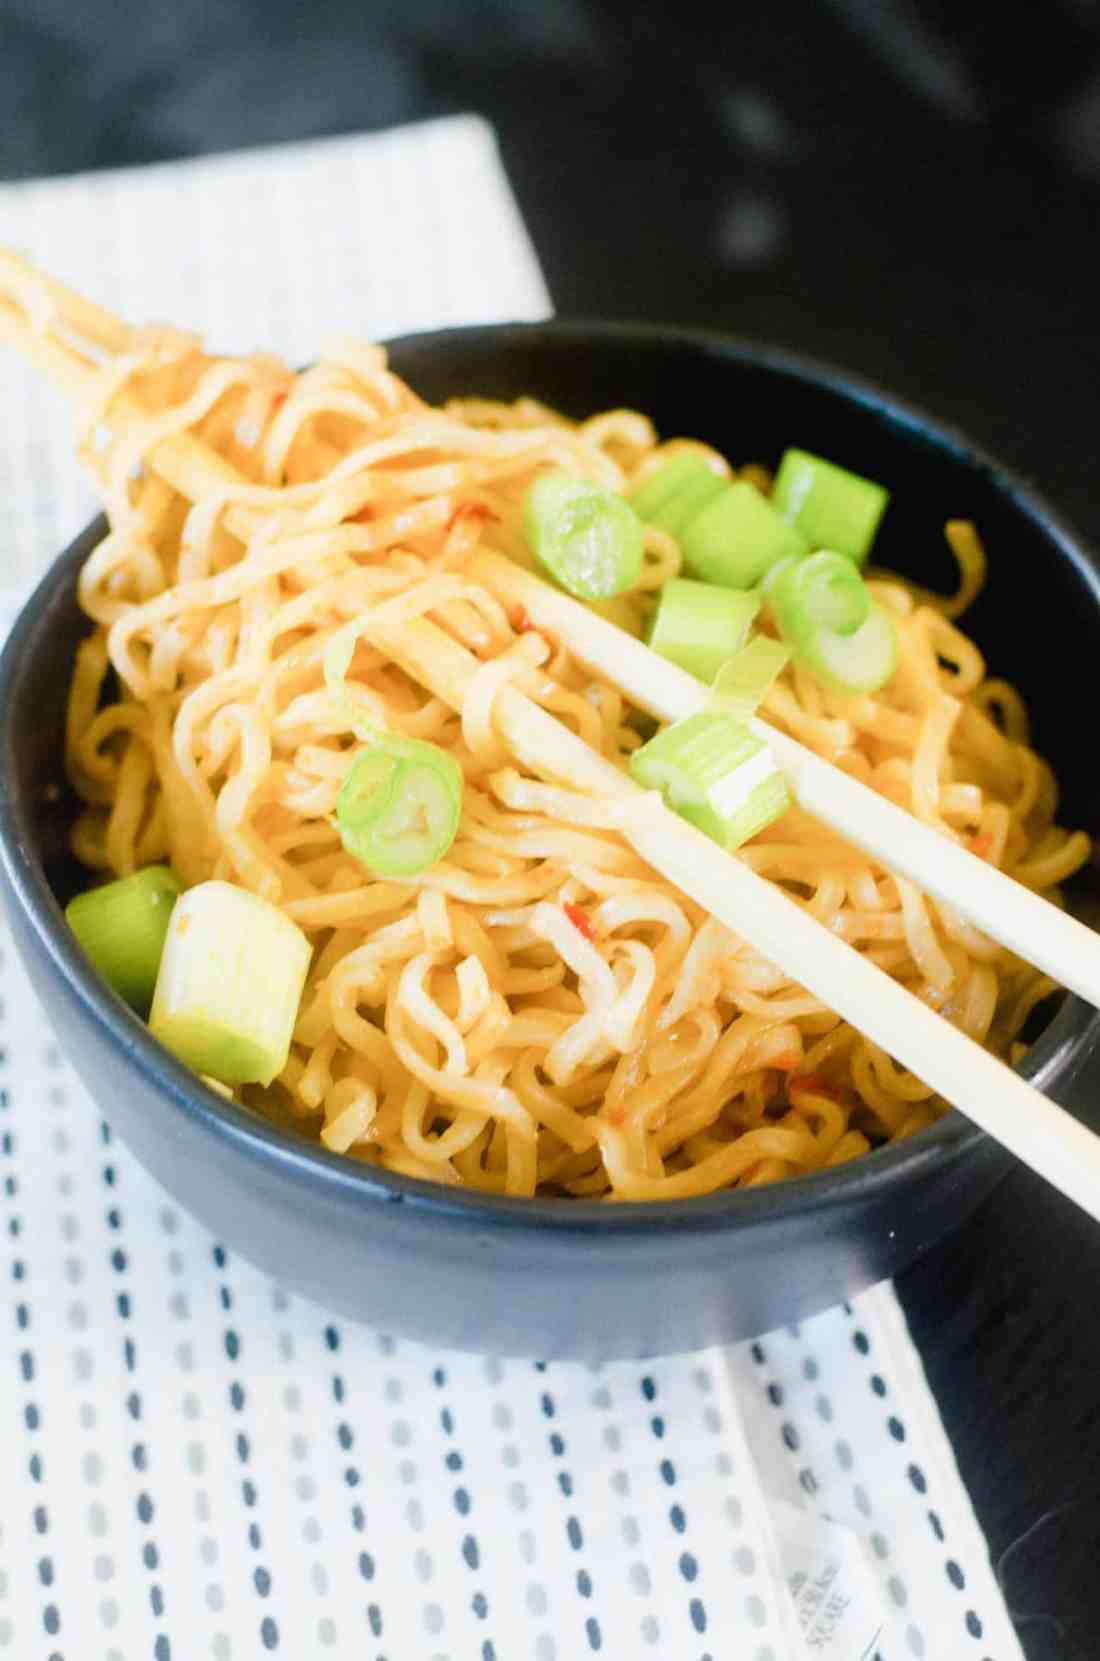 Easy Asian-inspired Chili Garlic Noodles made in about 10-15 minutes! Makes a delicious side dish or light lunch.